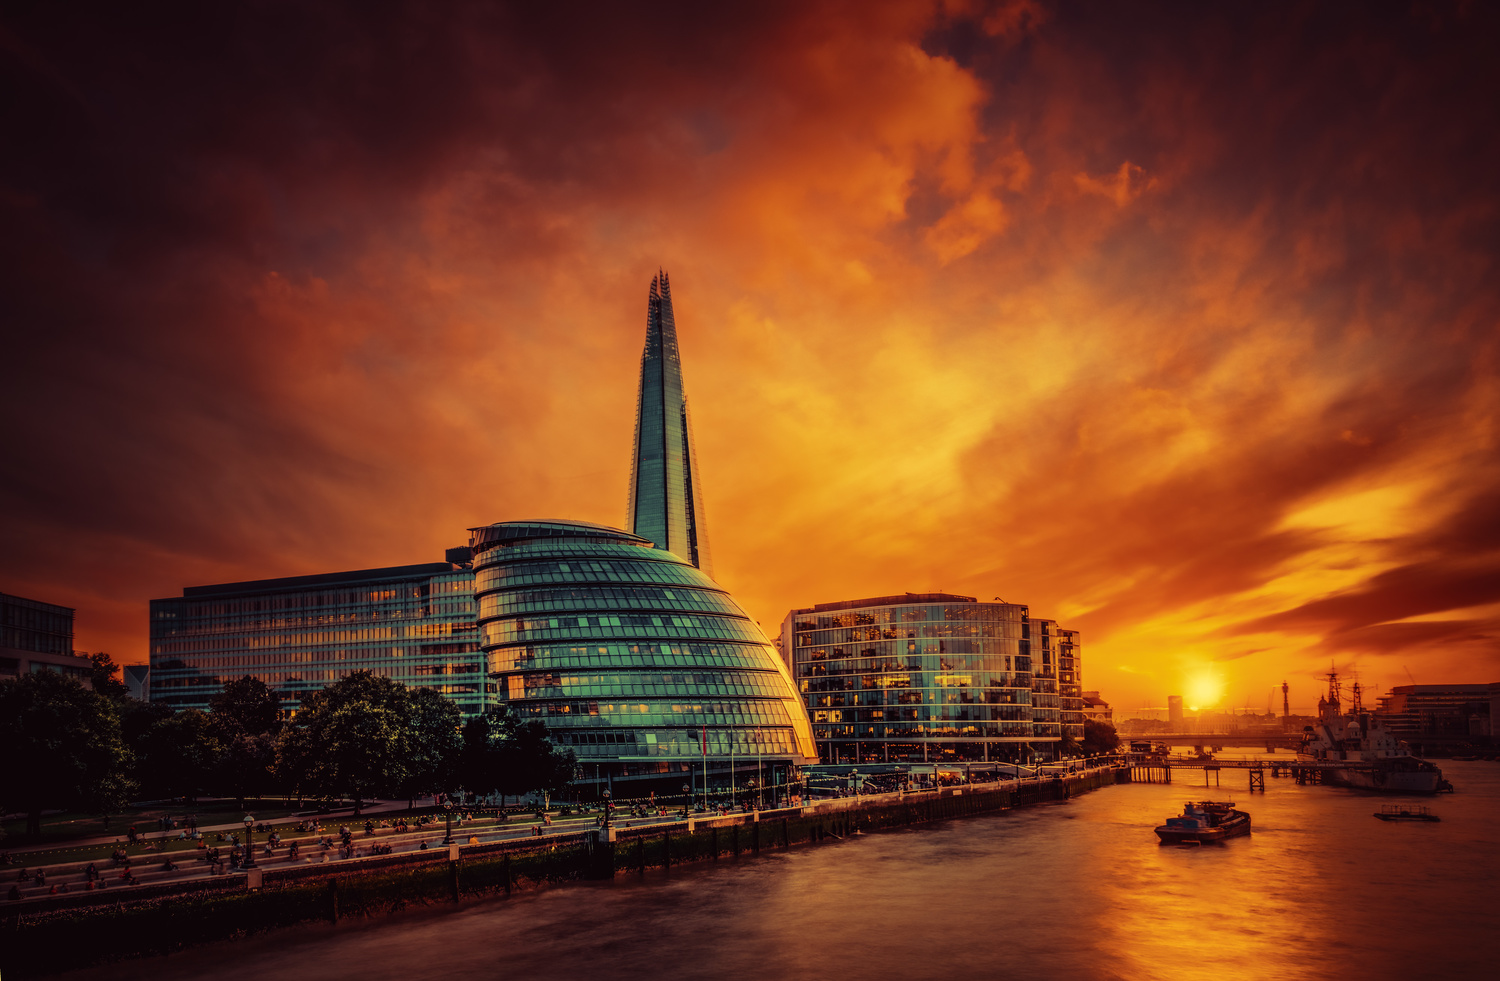 Sunset on the Thames by Alex Hill